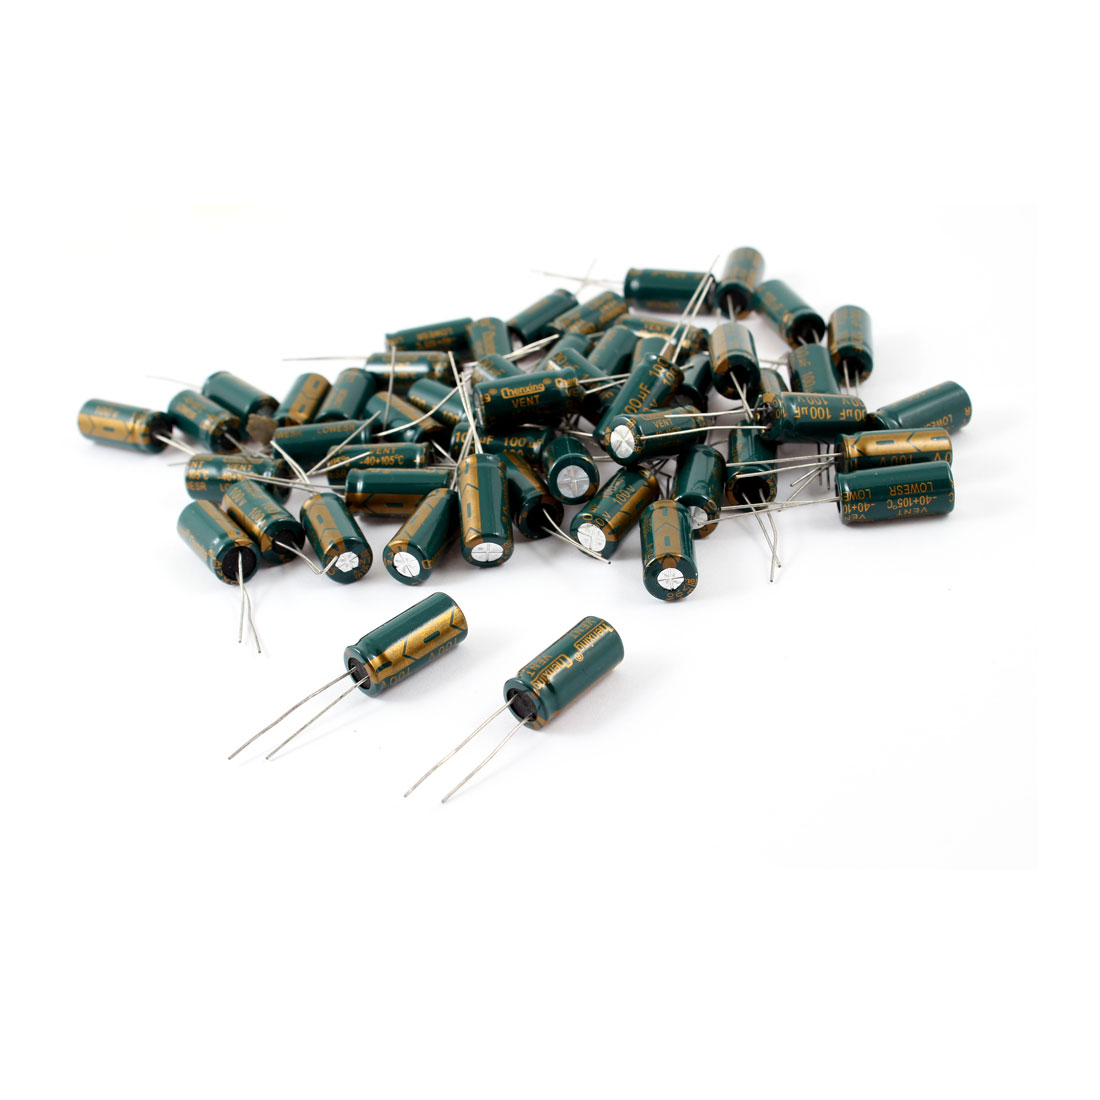 50 Pcs 100uF 100V Radial Motherboard Electrolytic Capacitors 10mmx21mm